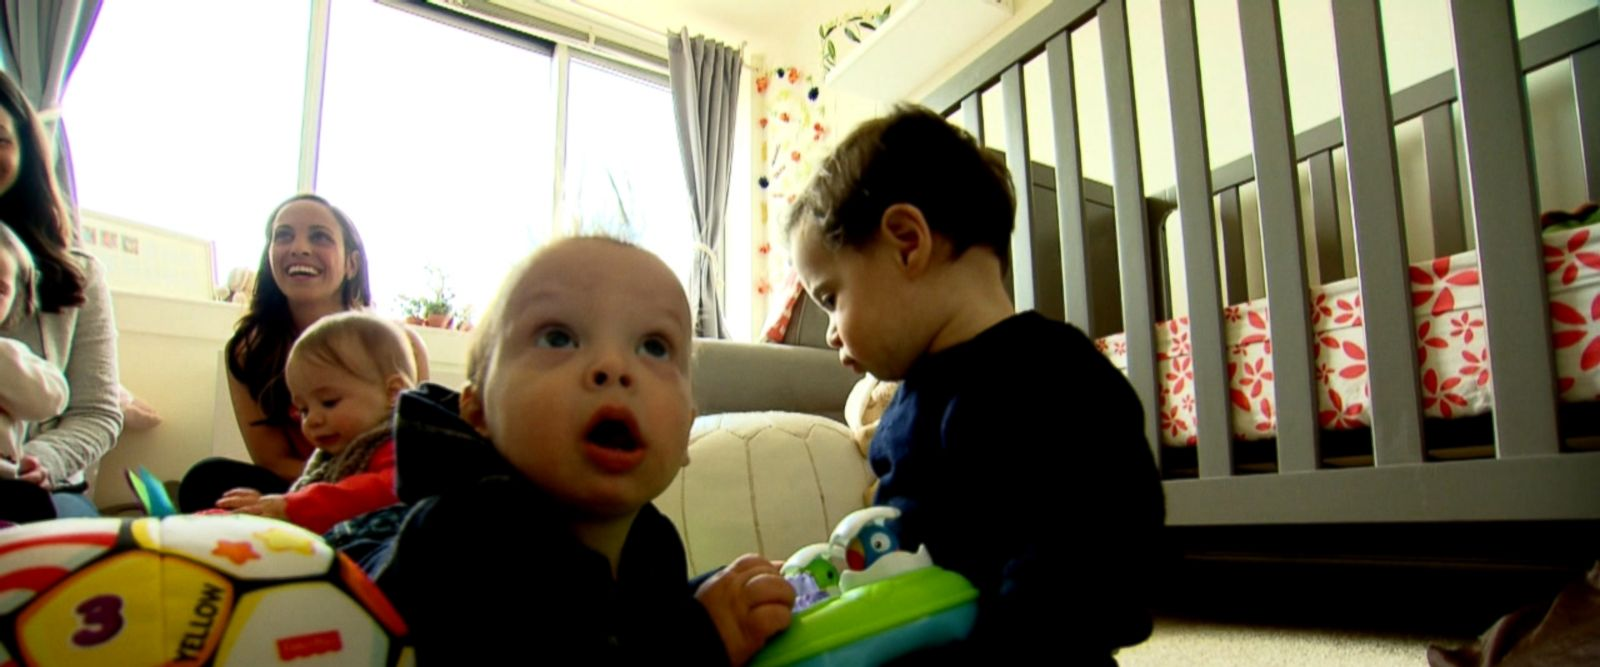 The FDA says benzocaine-based products should no longer be used for teething.